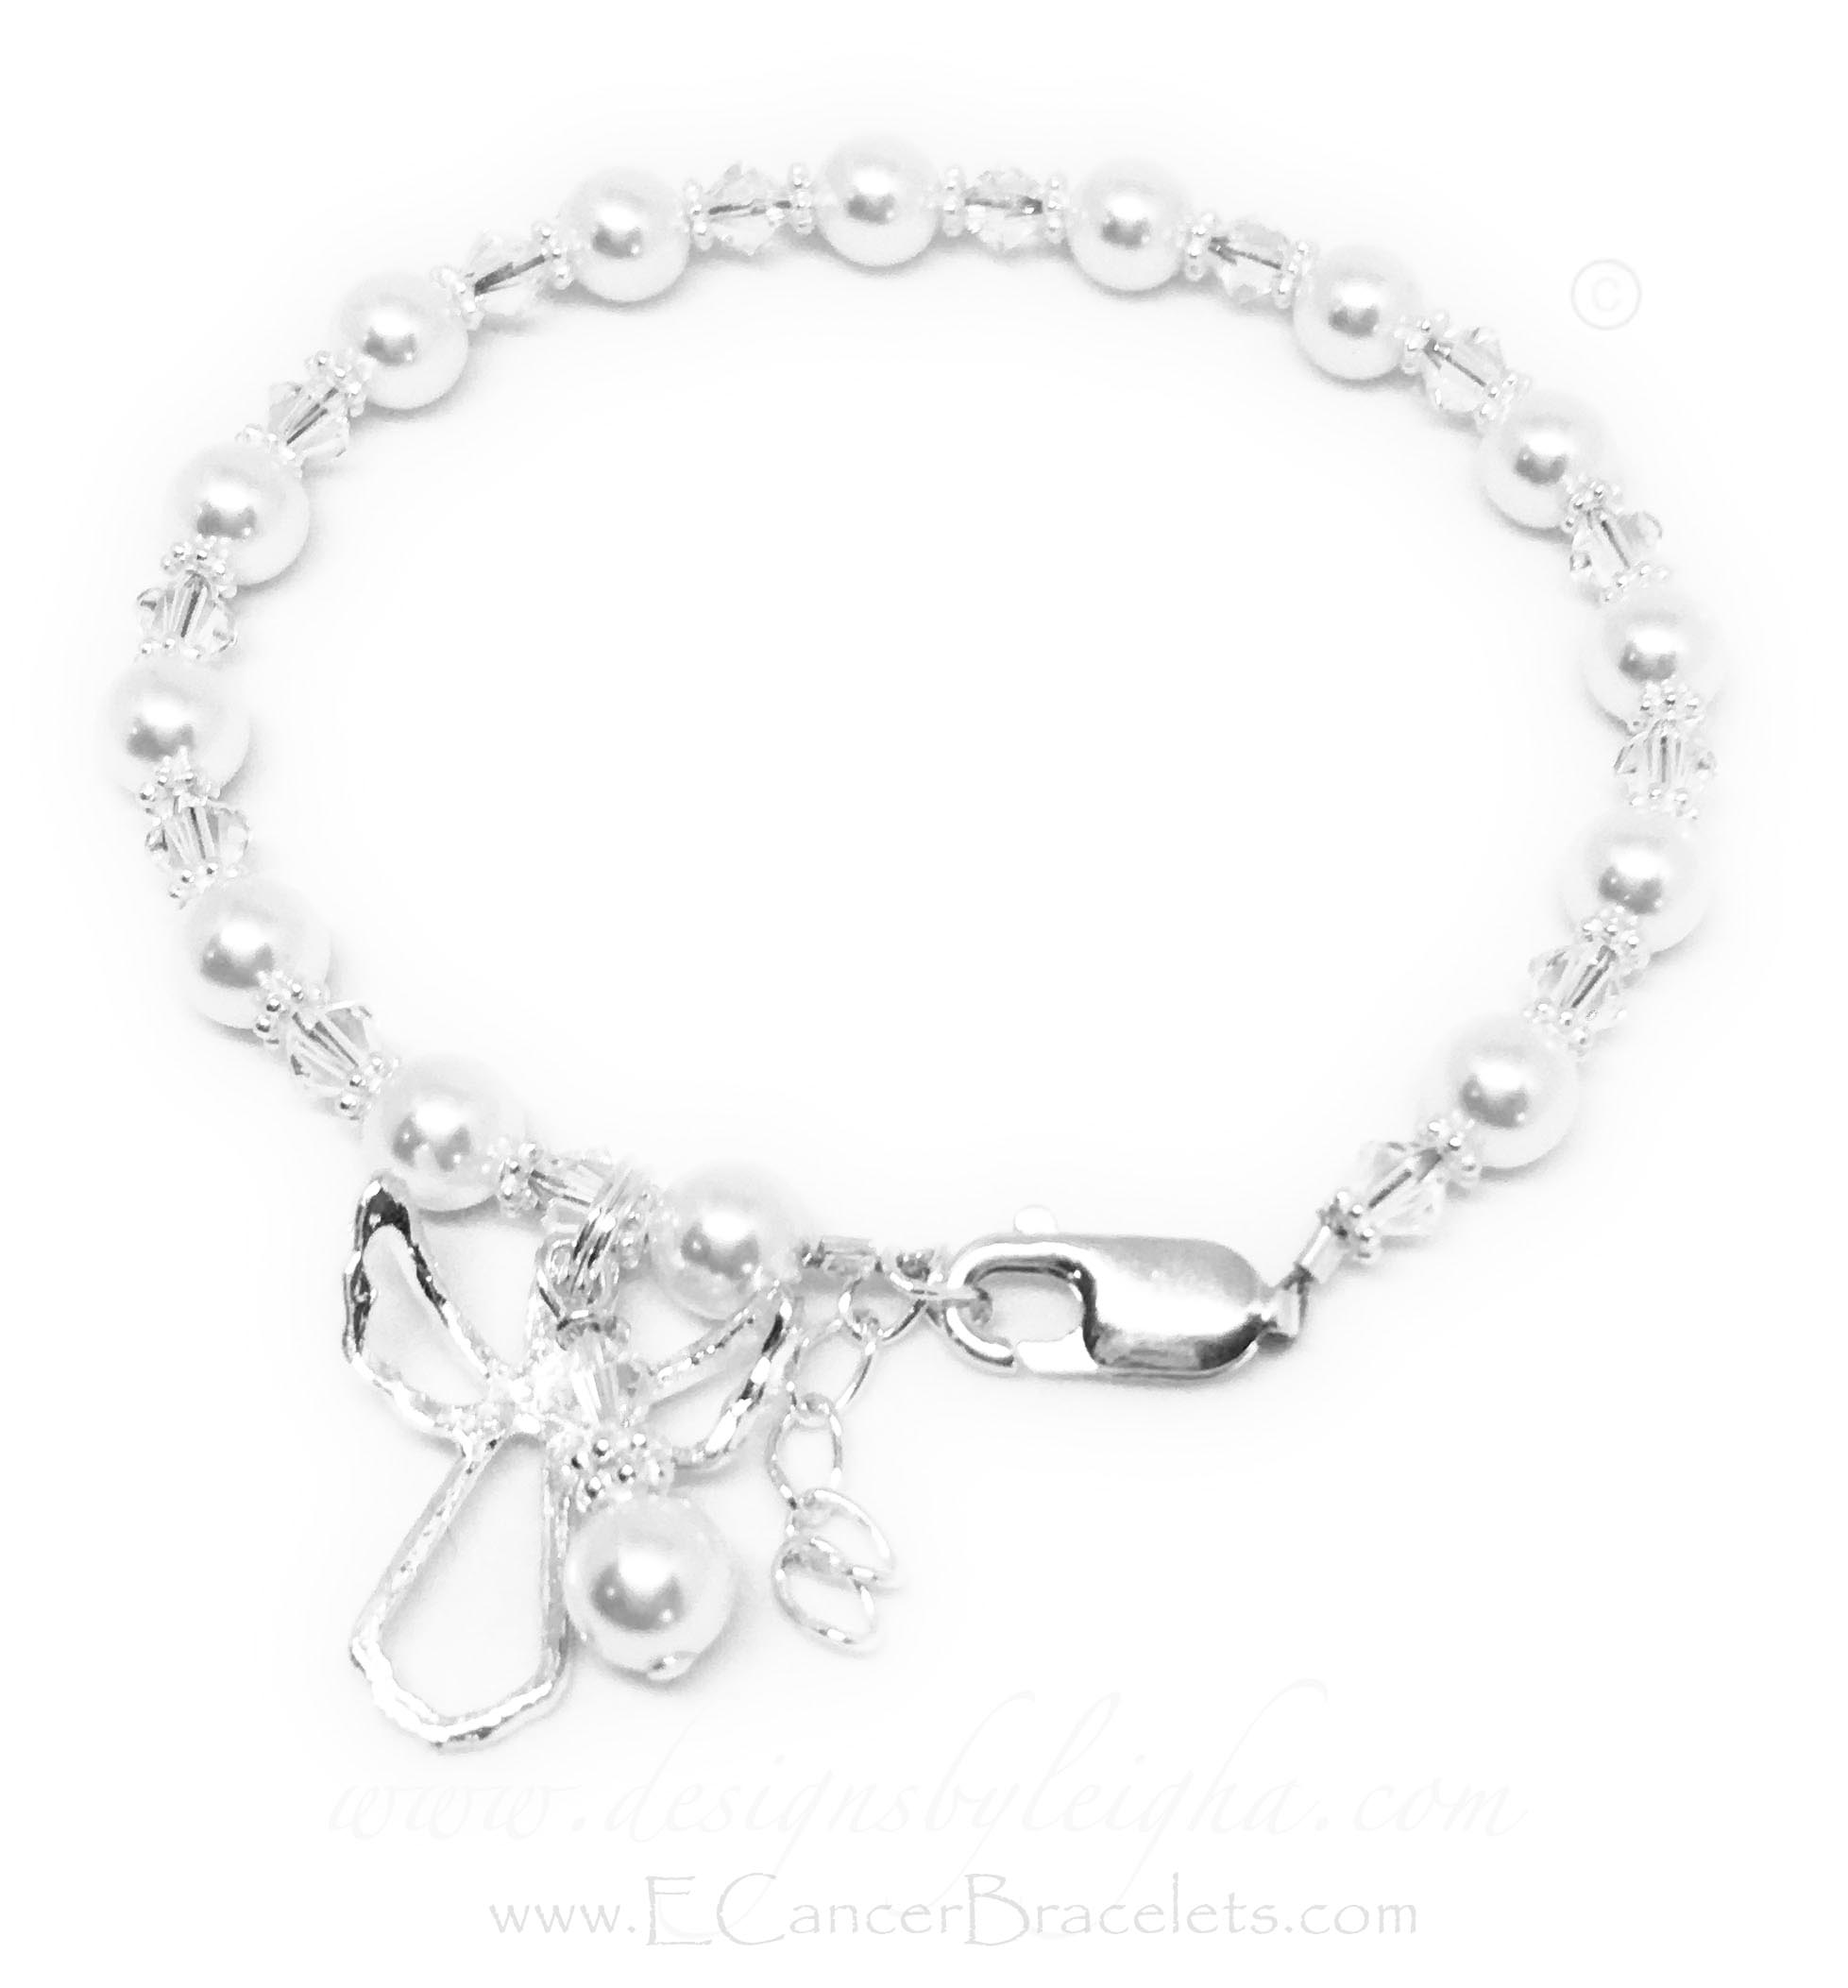 CBB-R70 Guardian Angel Bracelet shown with White Swarovski Pearls. The charms shown come with the bracelet. *Shown with an upgraded Lobster Claw with an Extension Clasp*